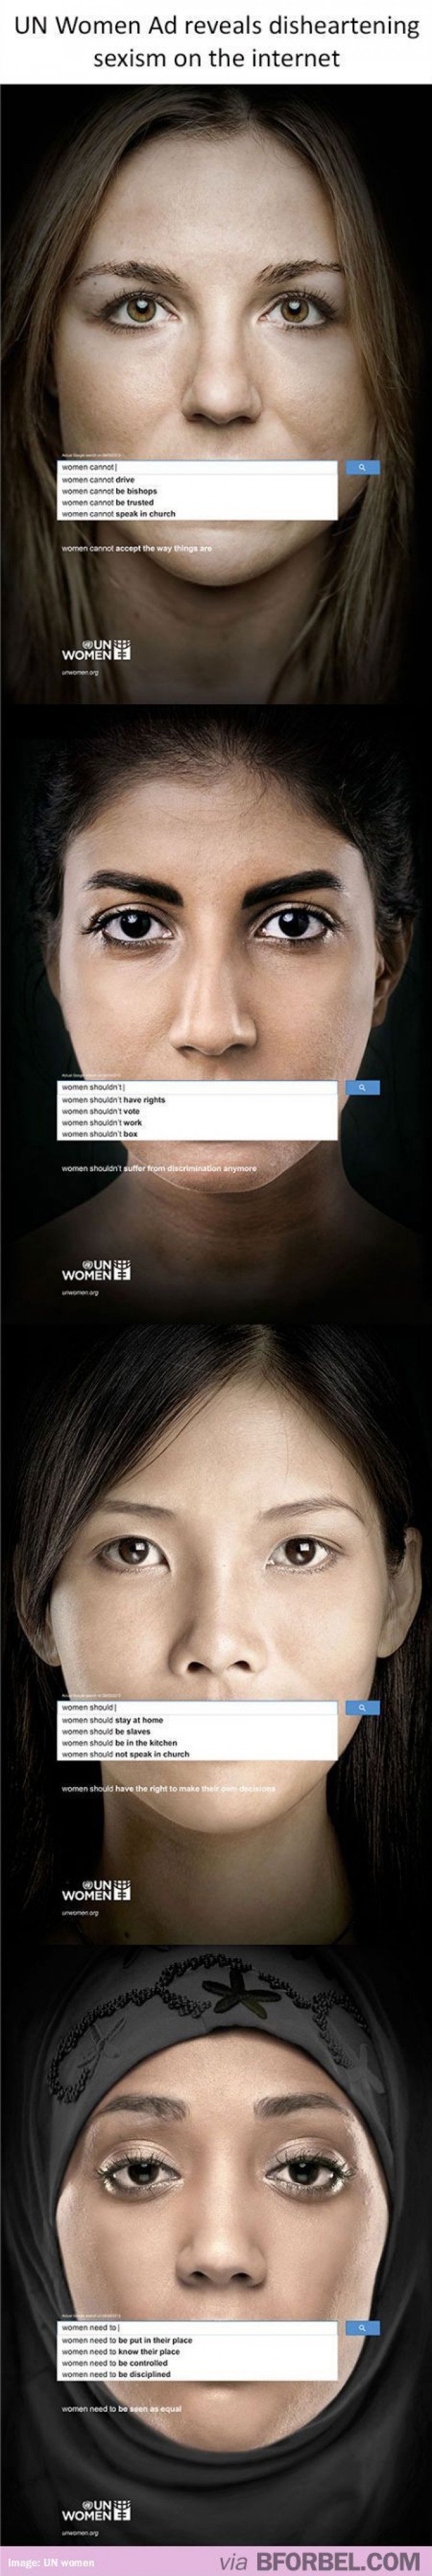 UN Ad Reveals Disheartening Sexism On The Internet